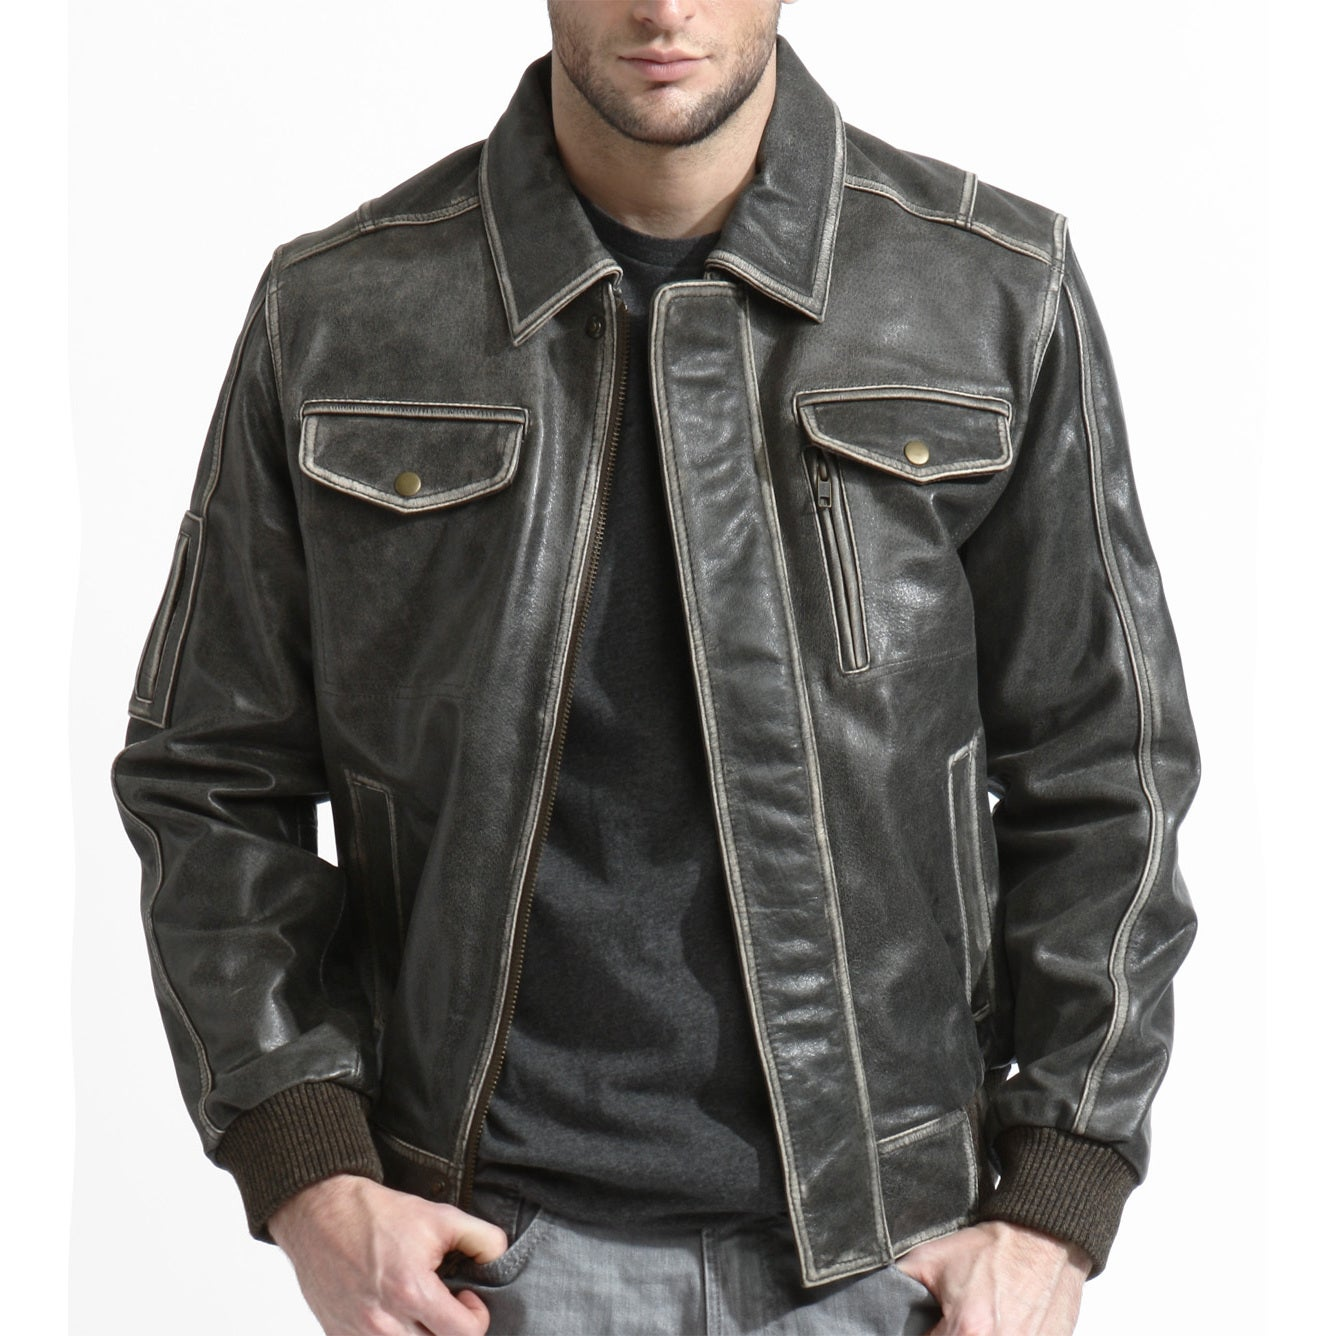 33b739000e Shop Men's Brown Distressed Leather Bomber Jacket - Free Shipping Today -  Overstock - 12002967